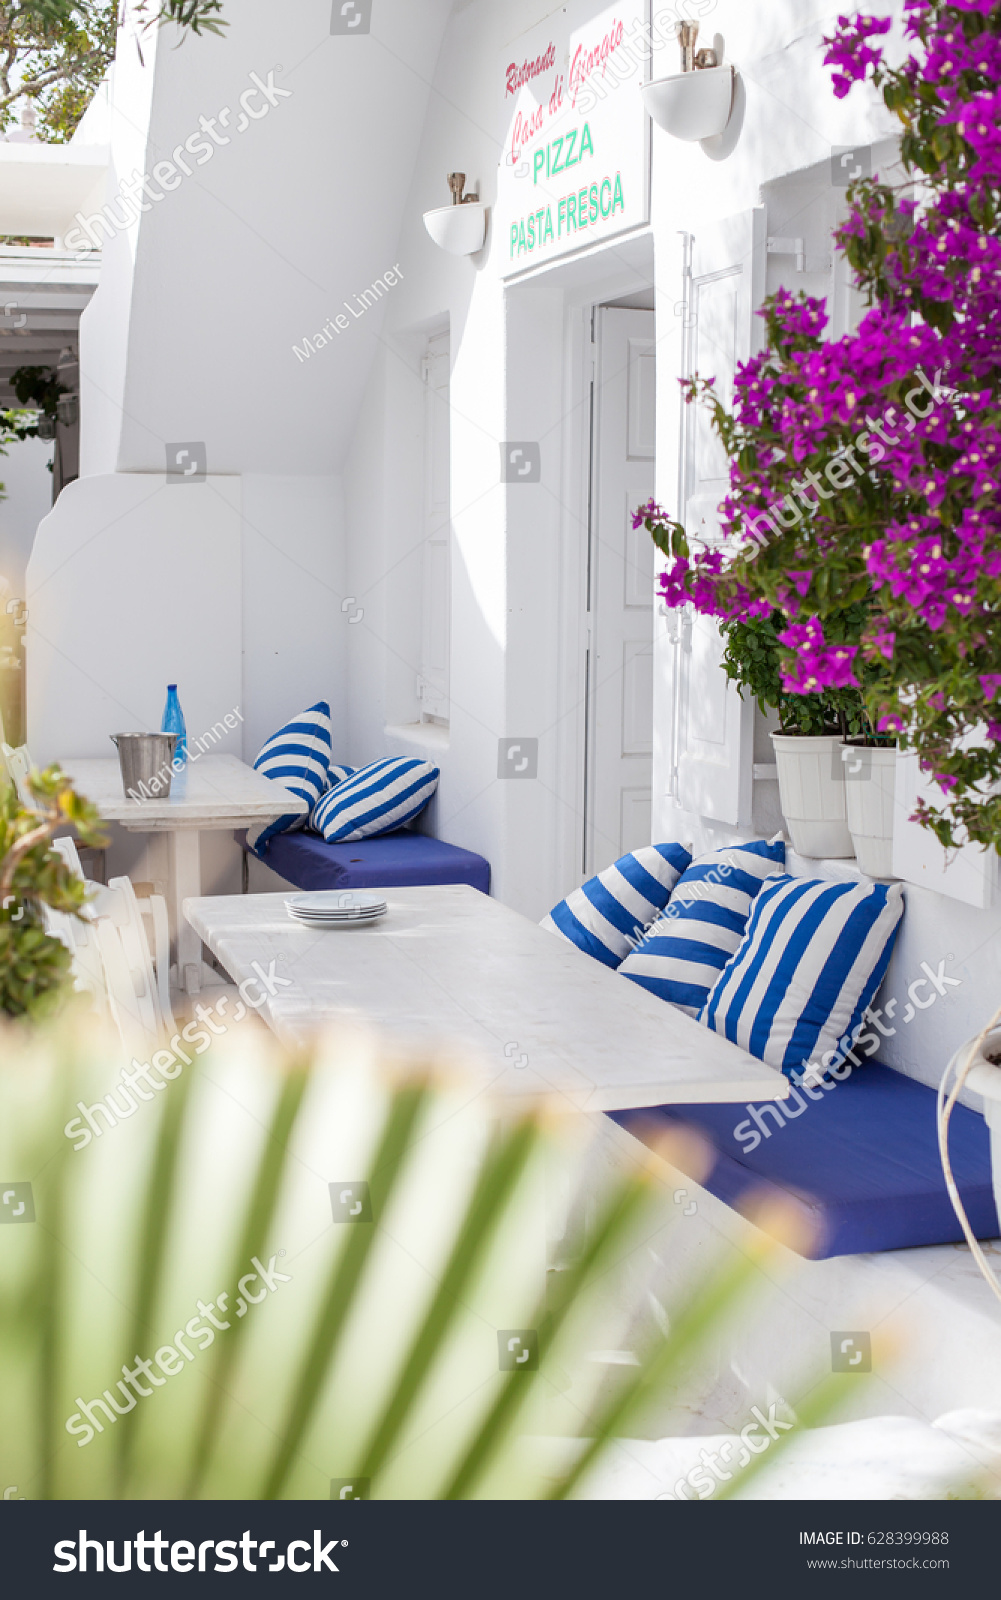 Sofa House Greece Mykonos Greece June 2016 Outside Sofas Stock Photo Edit Now